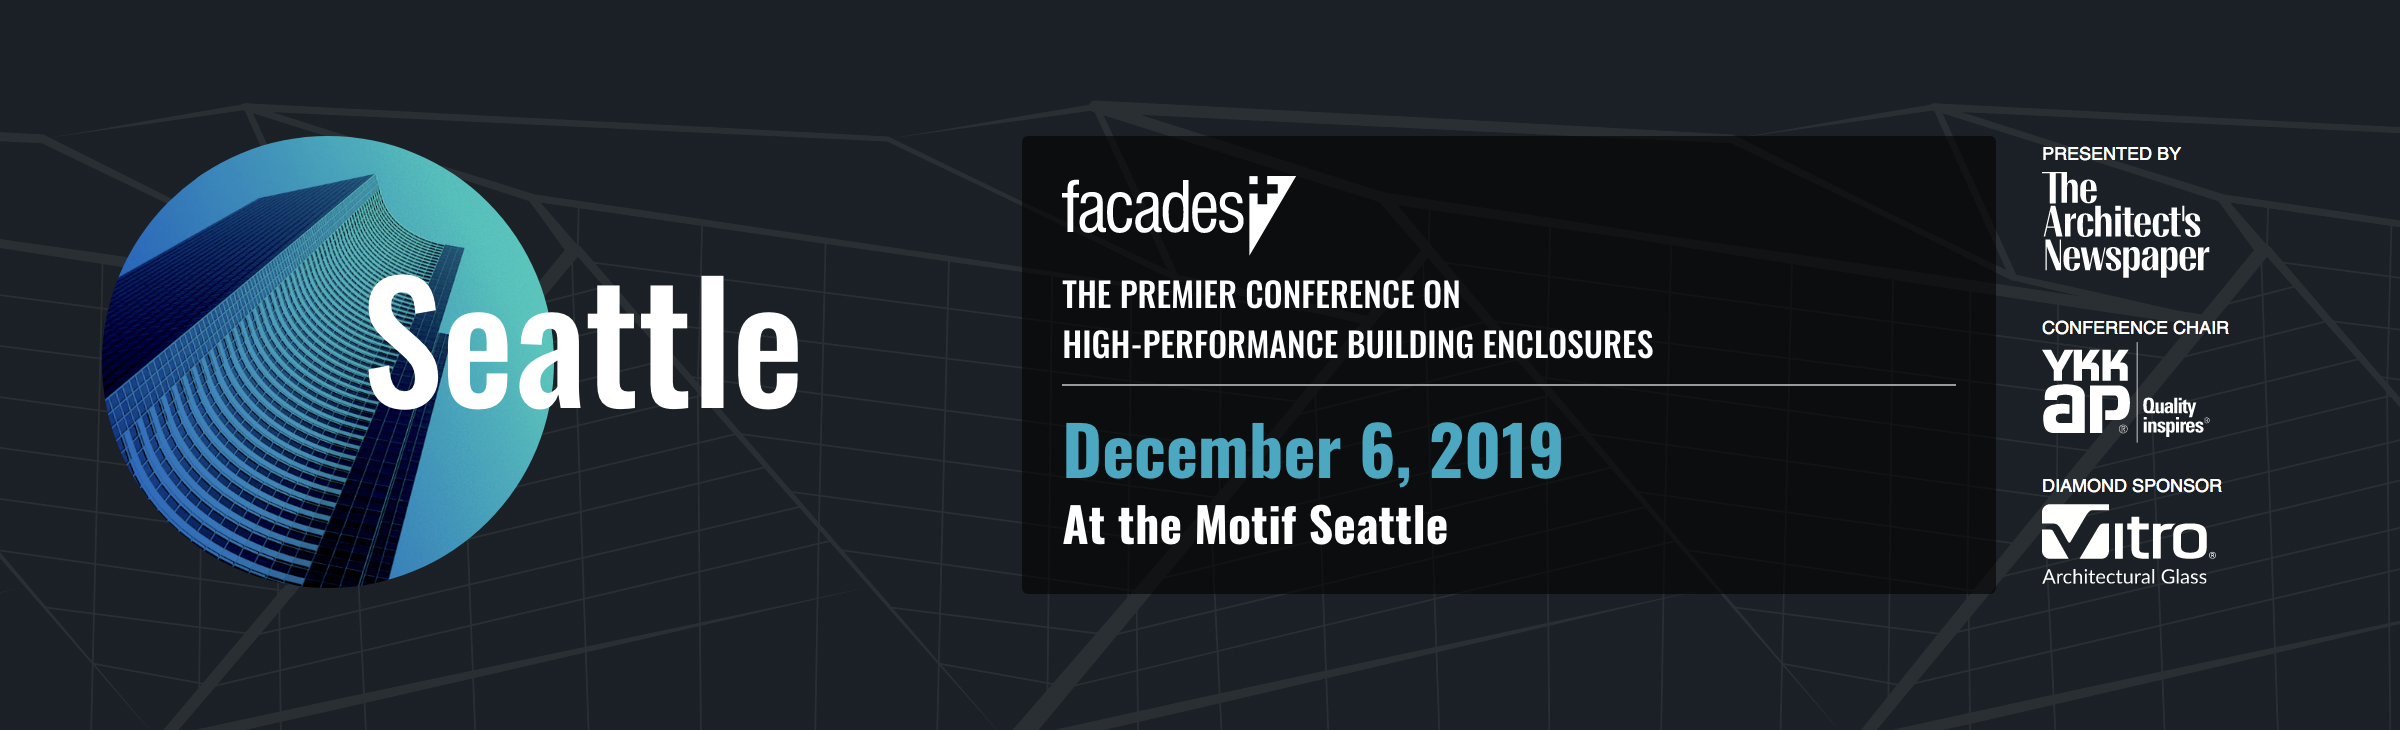 Facades+ Conference: Seattle 2019